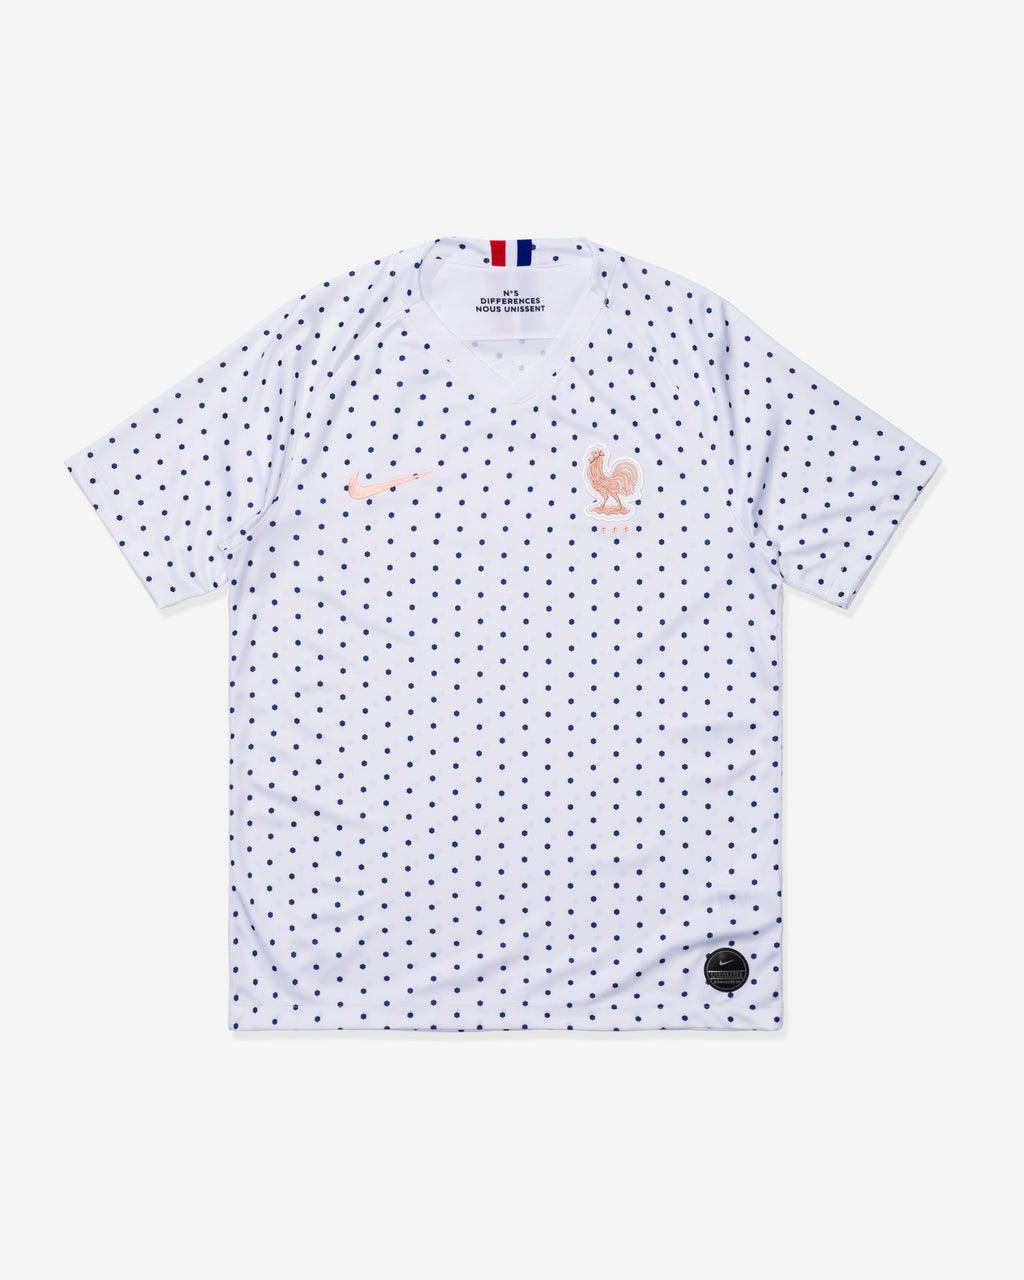 MEN'S FFF 2019 STADIUM AWAY JERSEY - WHITE/P488C